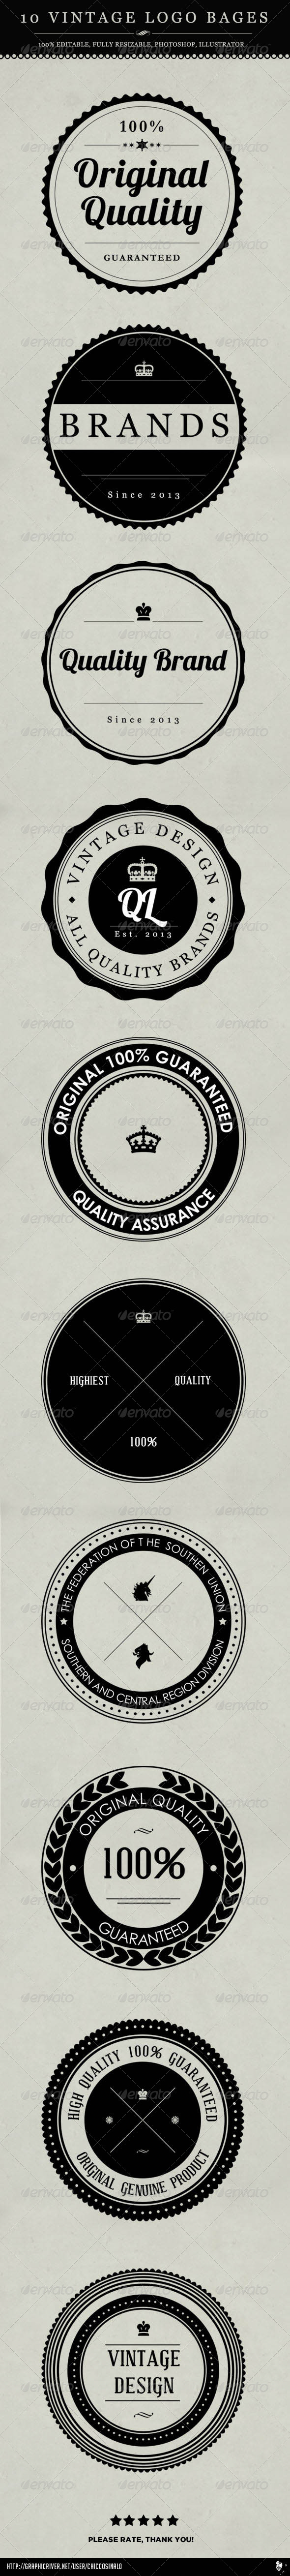 10 Vintage Logo Badges - Badges & Stickers Web Elements